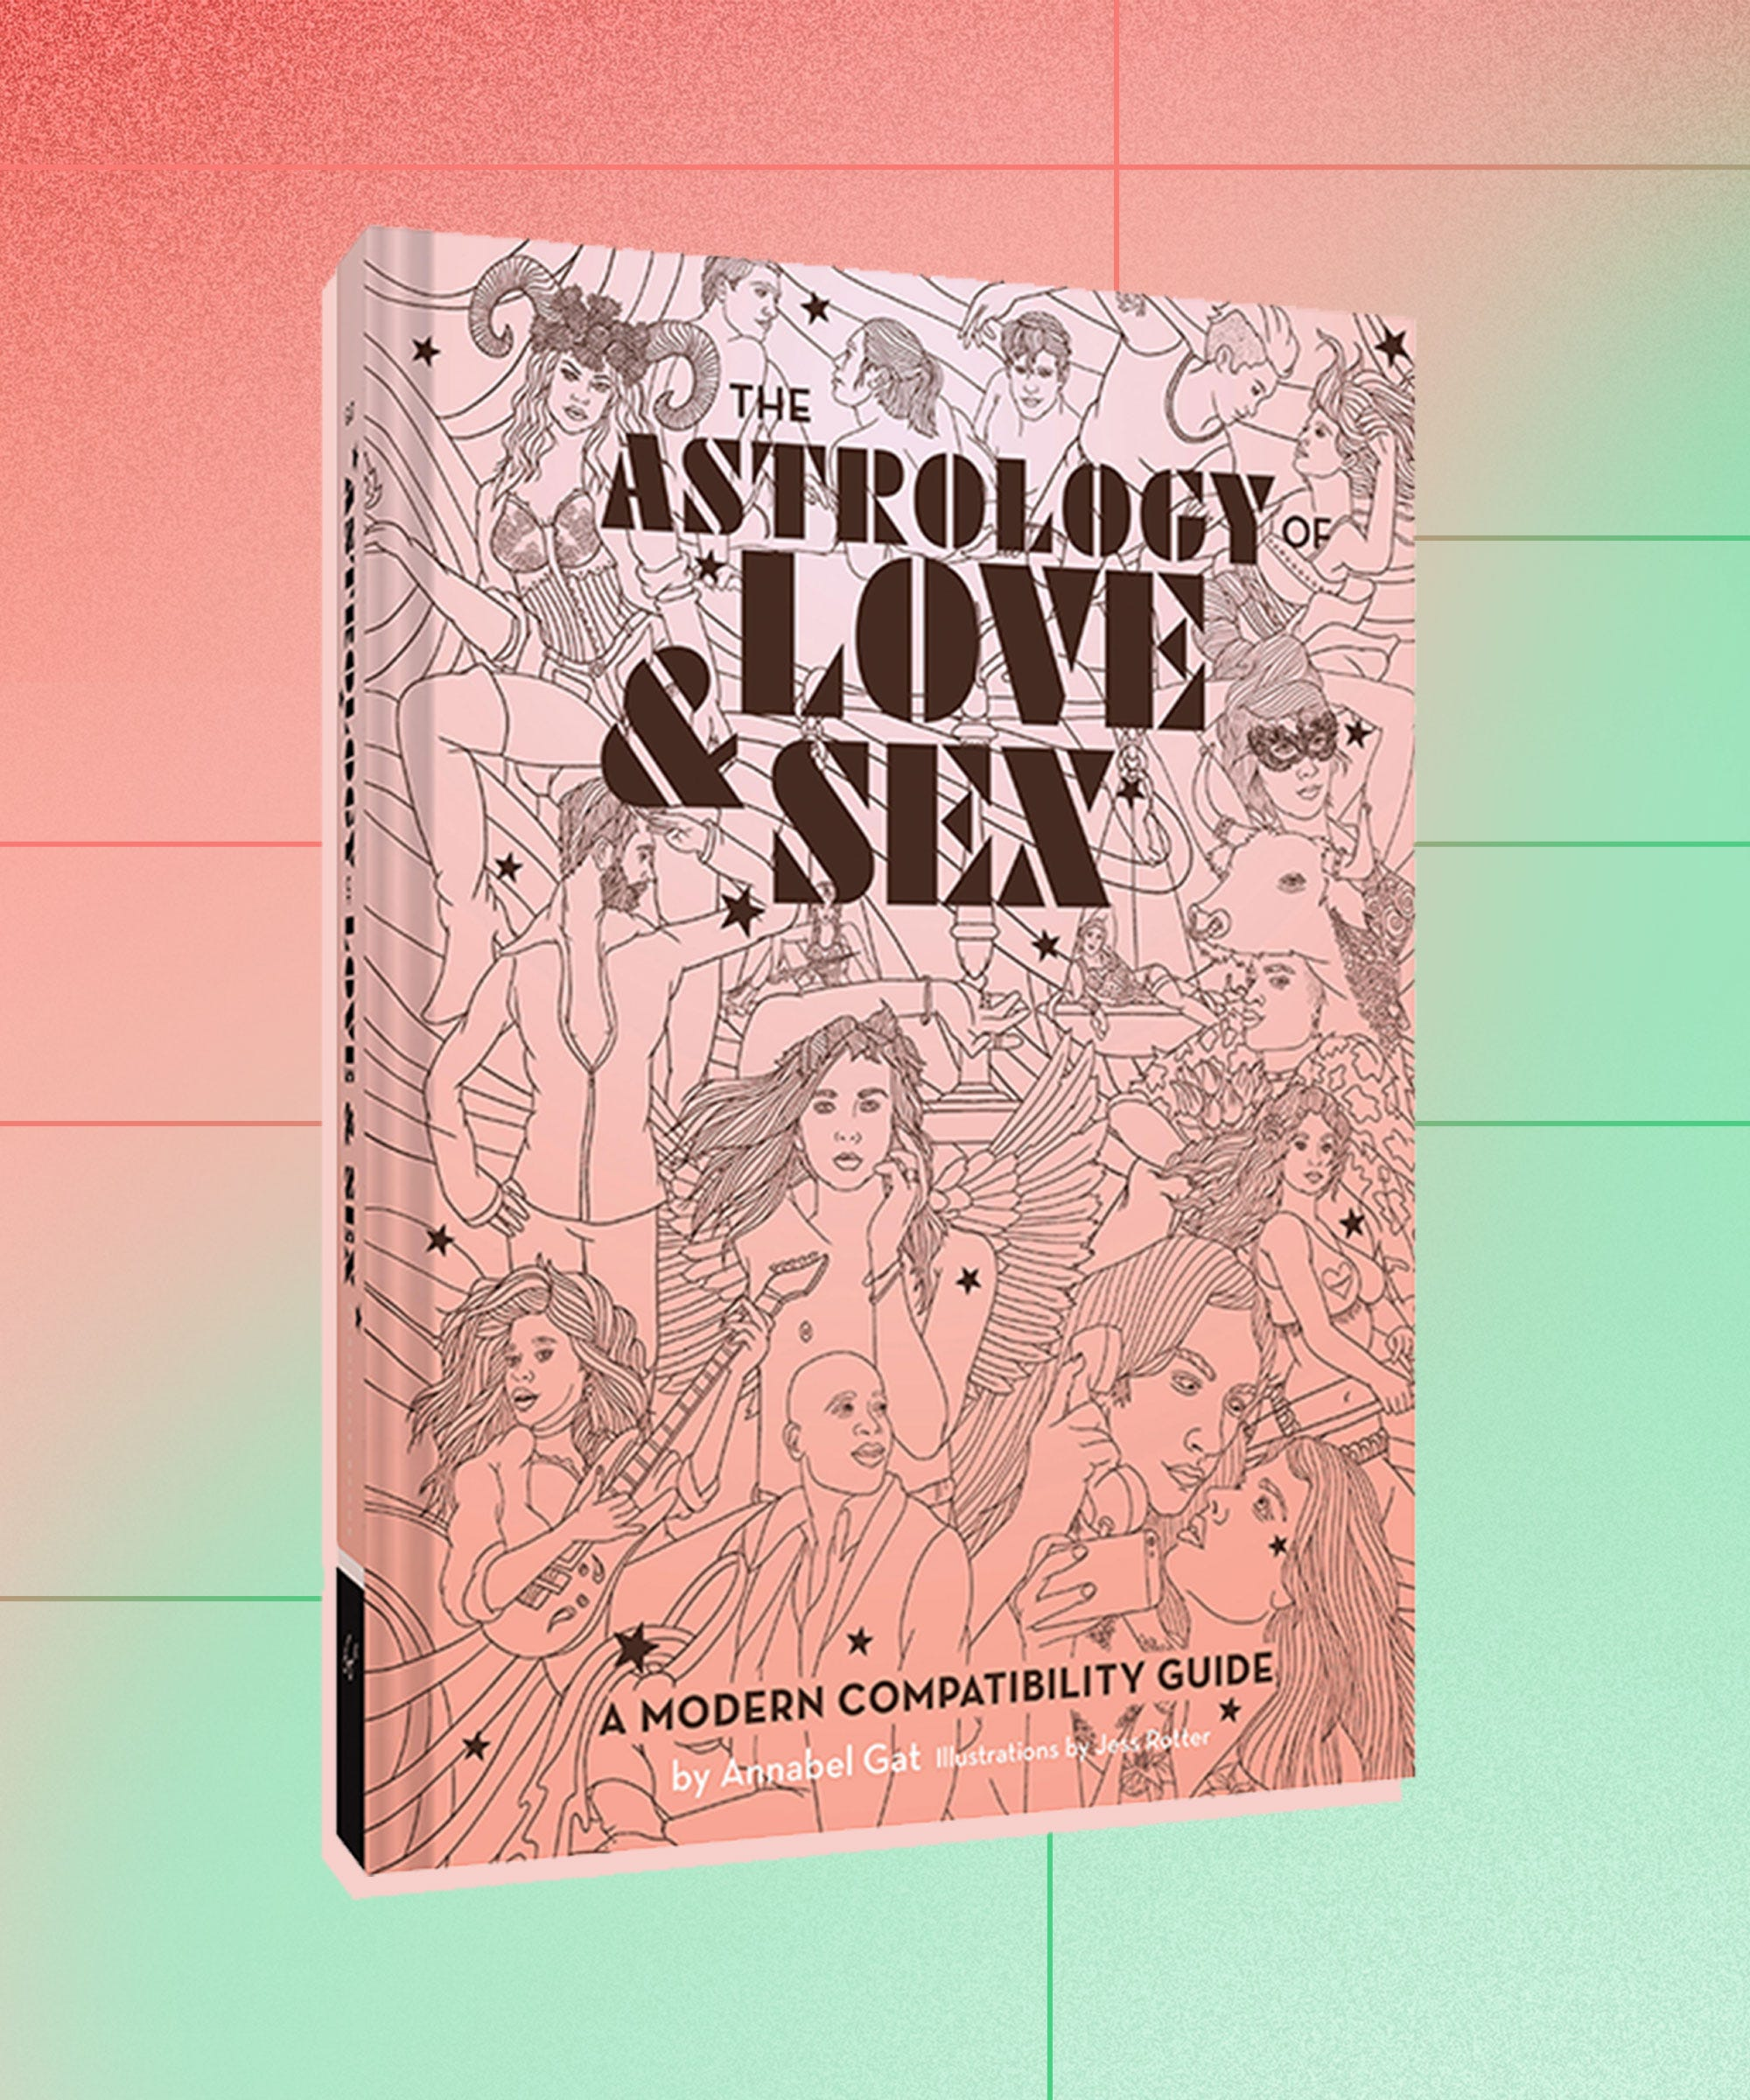 Annabel Gat On Zodiac Sign Compatibility, Astrology